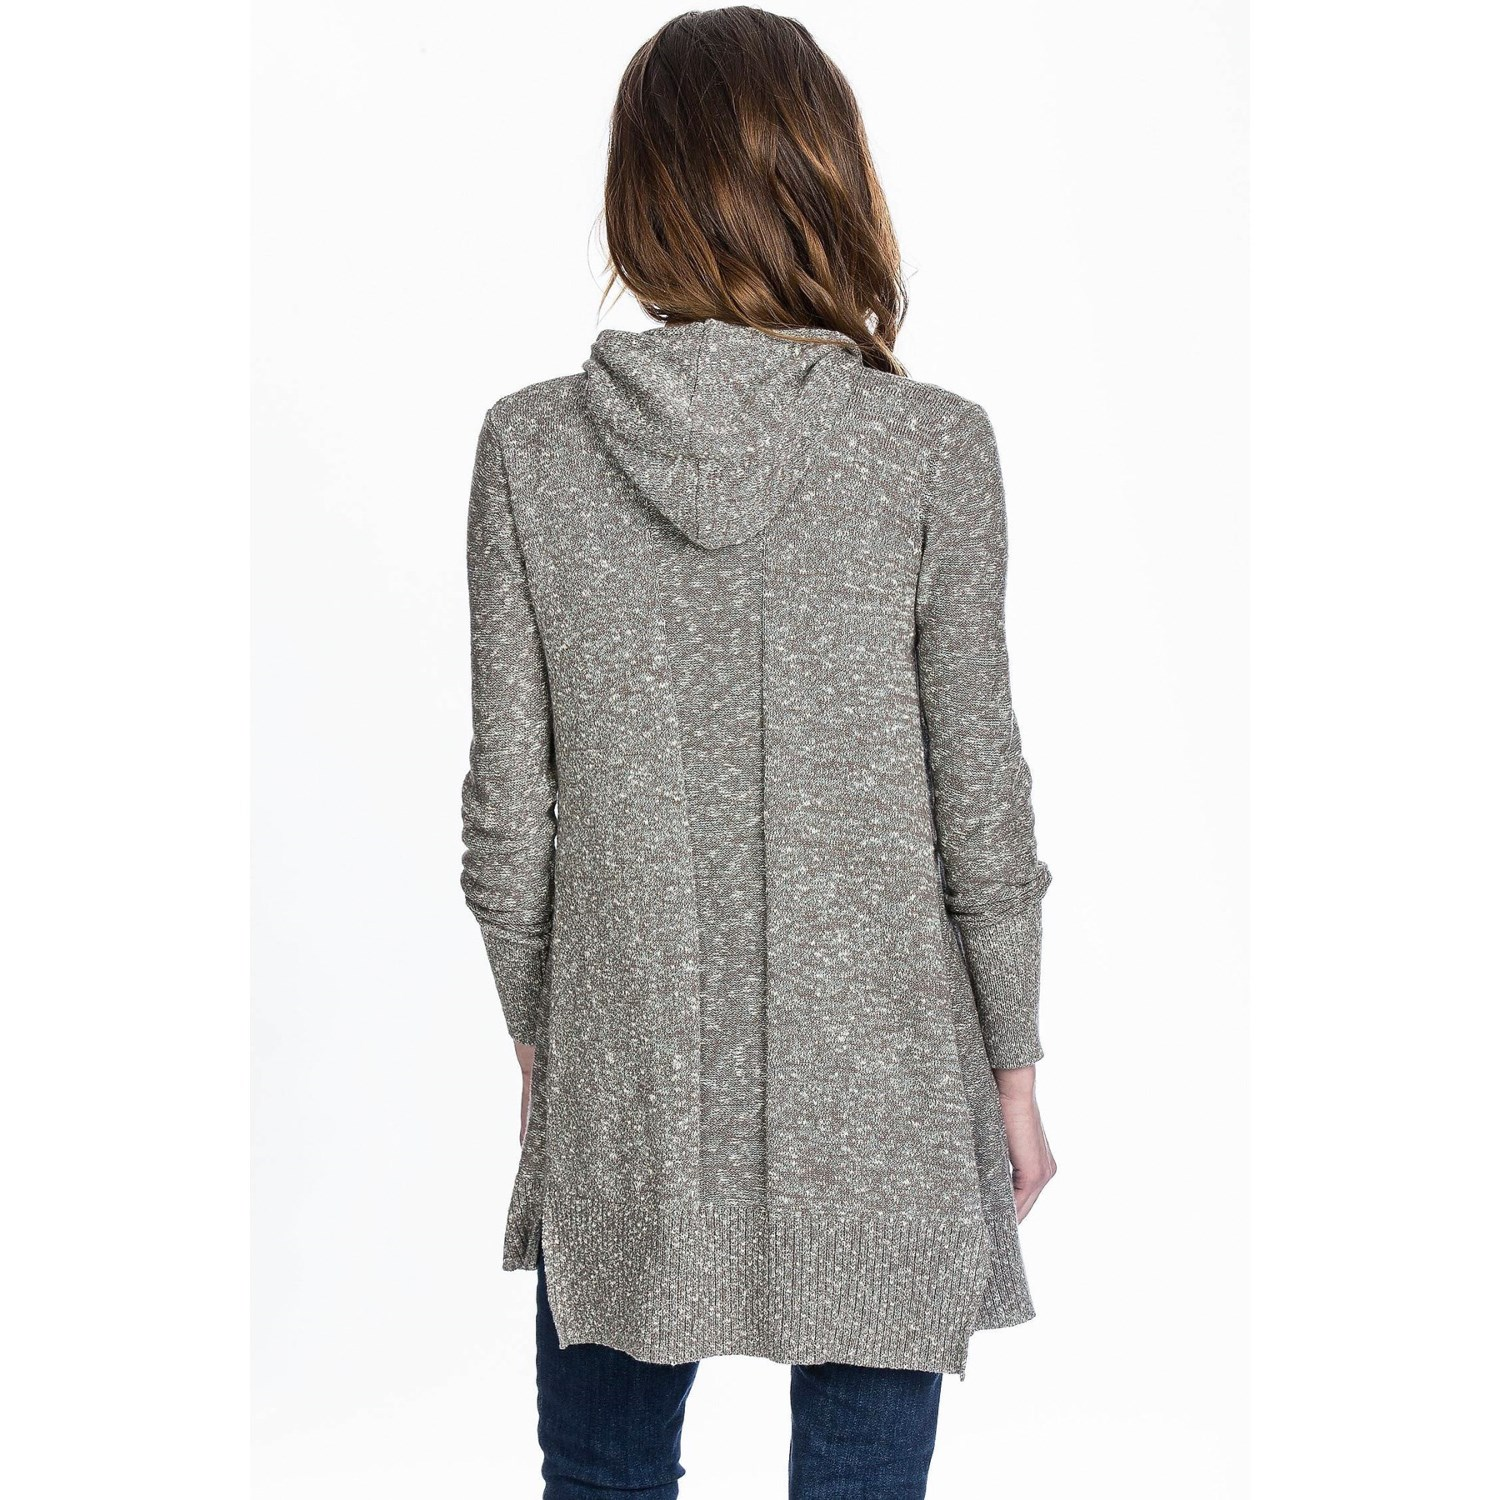 Free shipping & returns on women's sweaters, cardigans, oversized sweaters at 0549sahibi.tk Shop hooded cardigans, cowl necks, turtlenecks, cable knits & more from top brands. Skip navigation. Give the card that gives! We donate 1% of all Gift Card sales to local nonprofits.